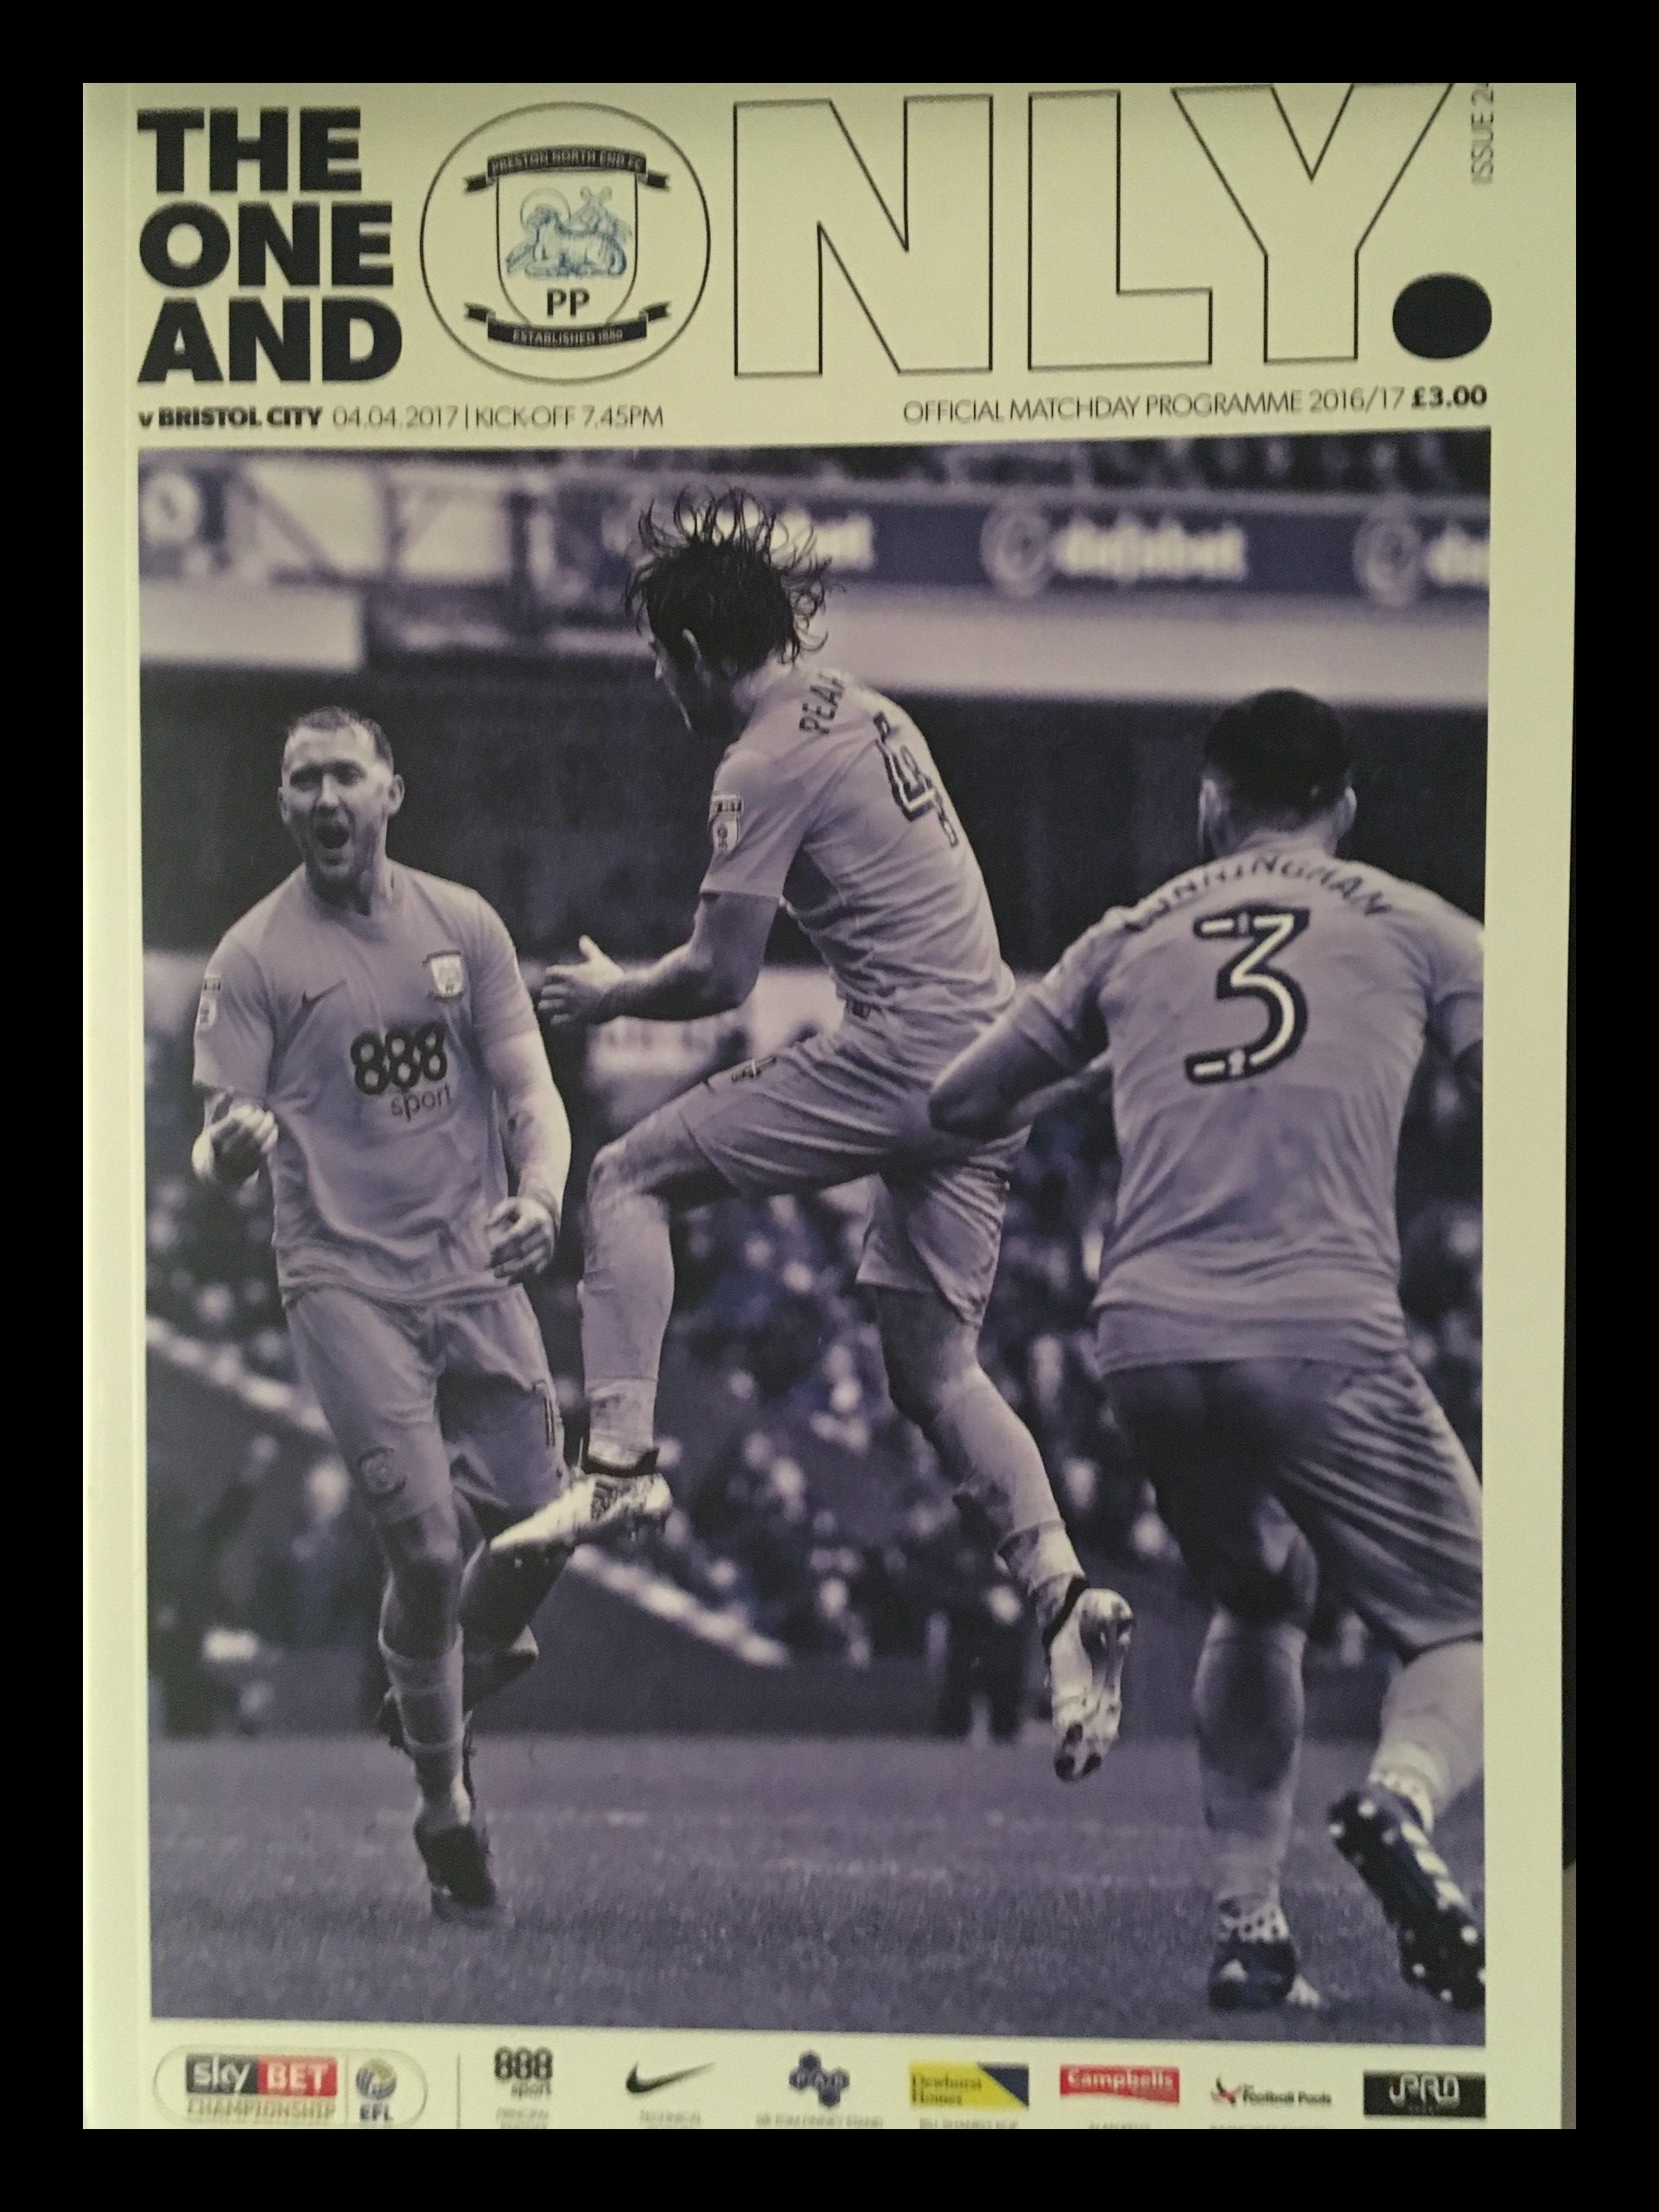 Preston North End v Bristol City 04-04-17 Programme